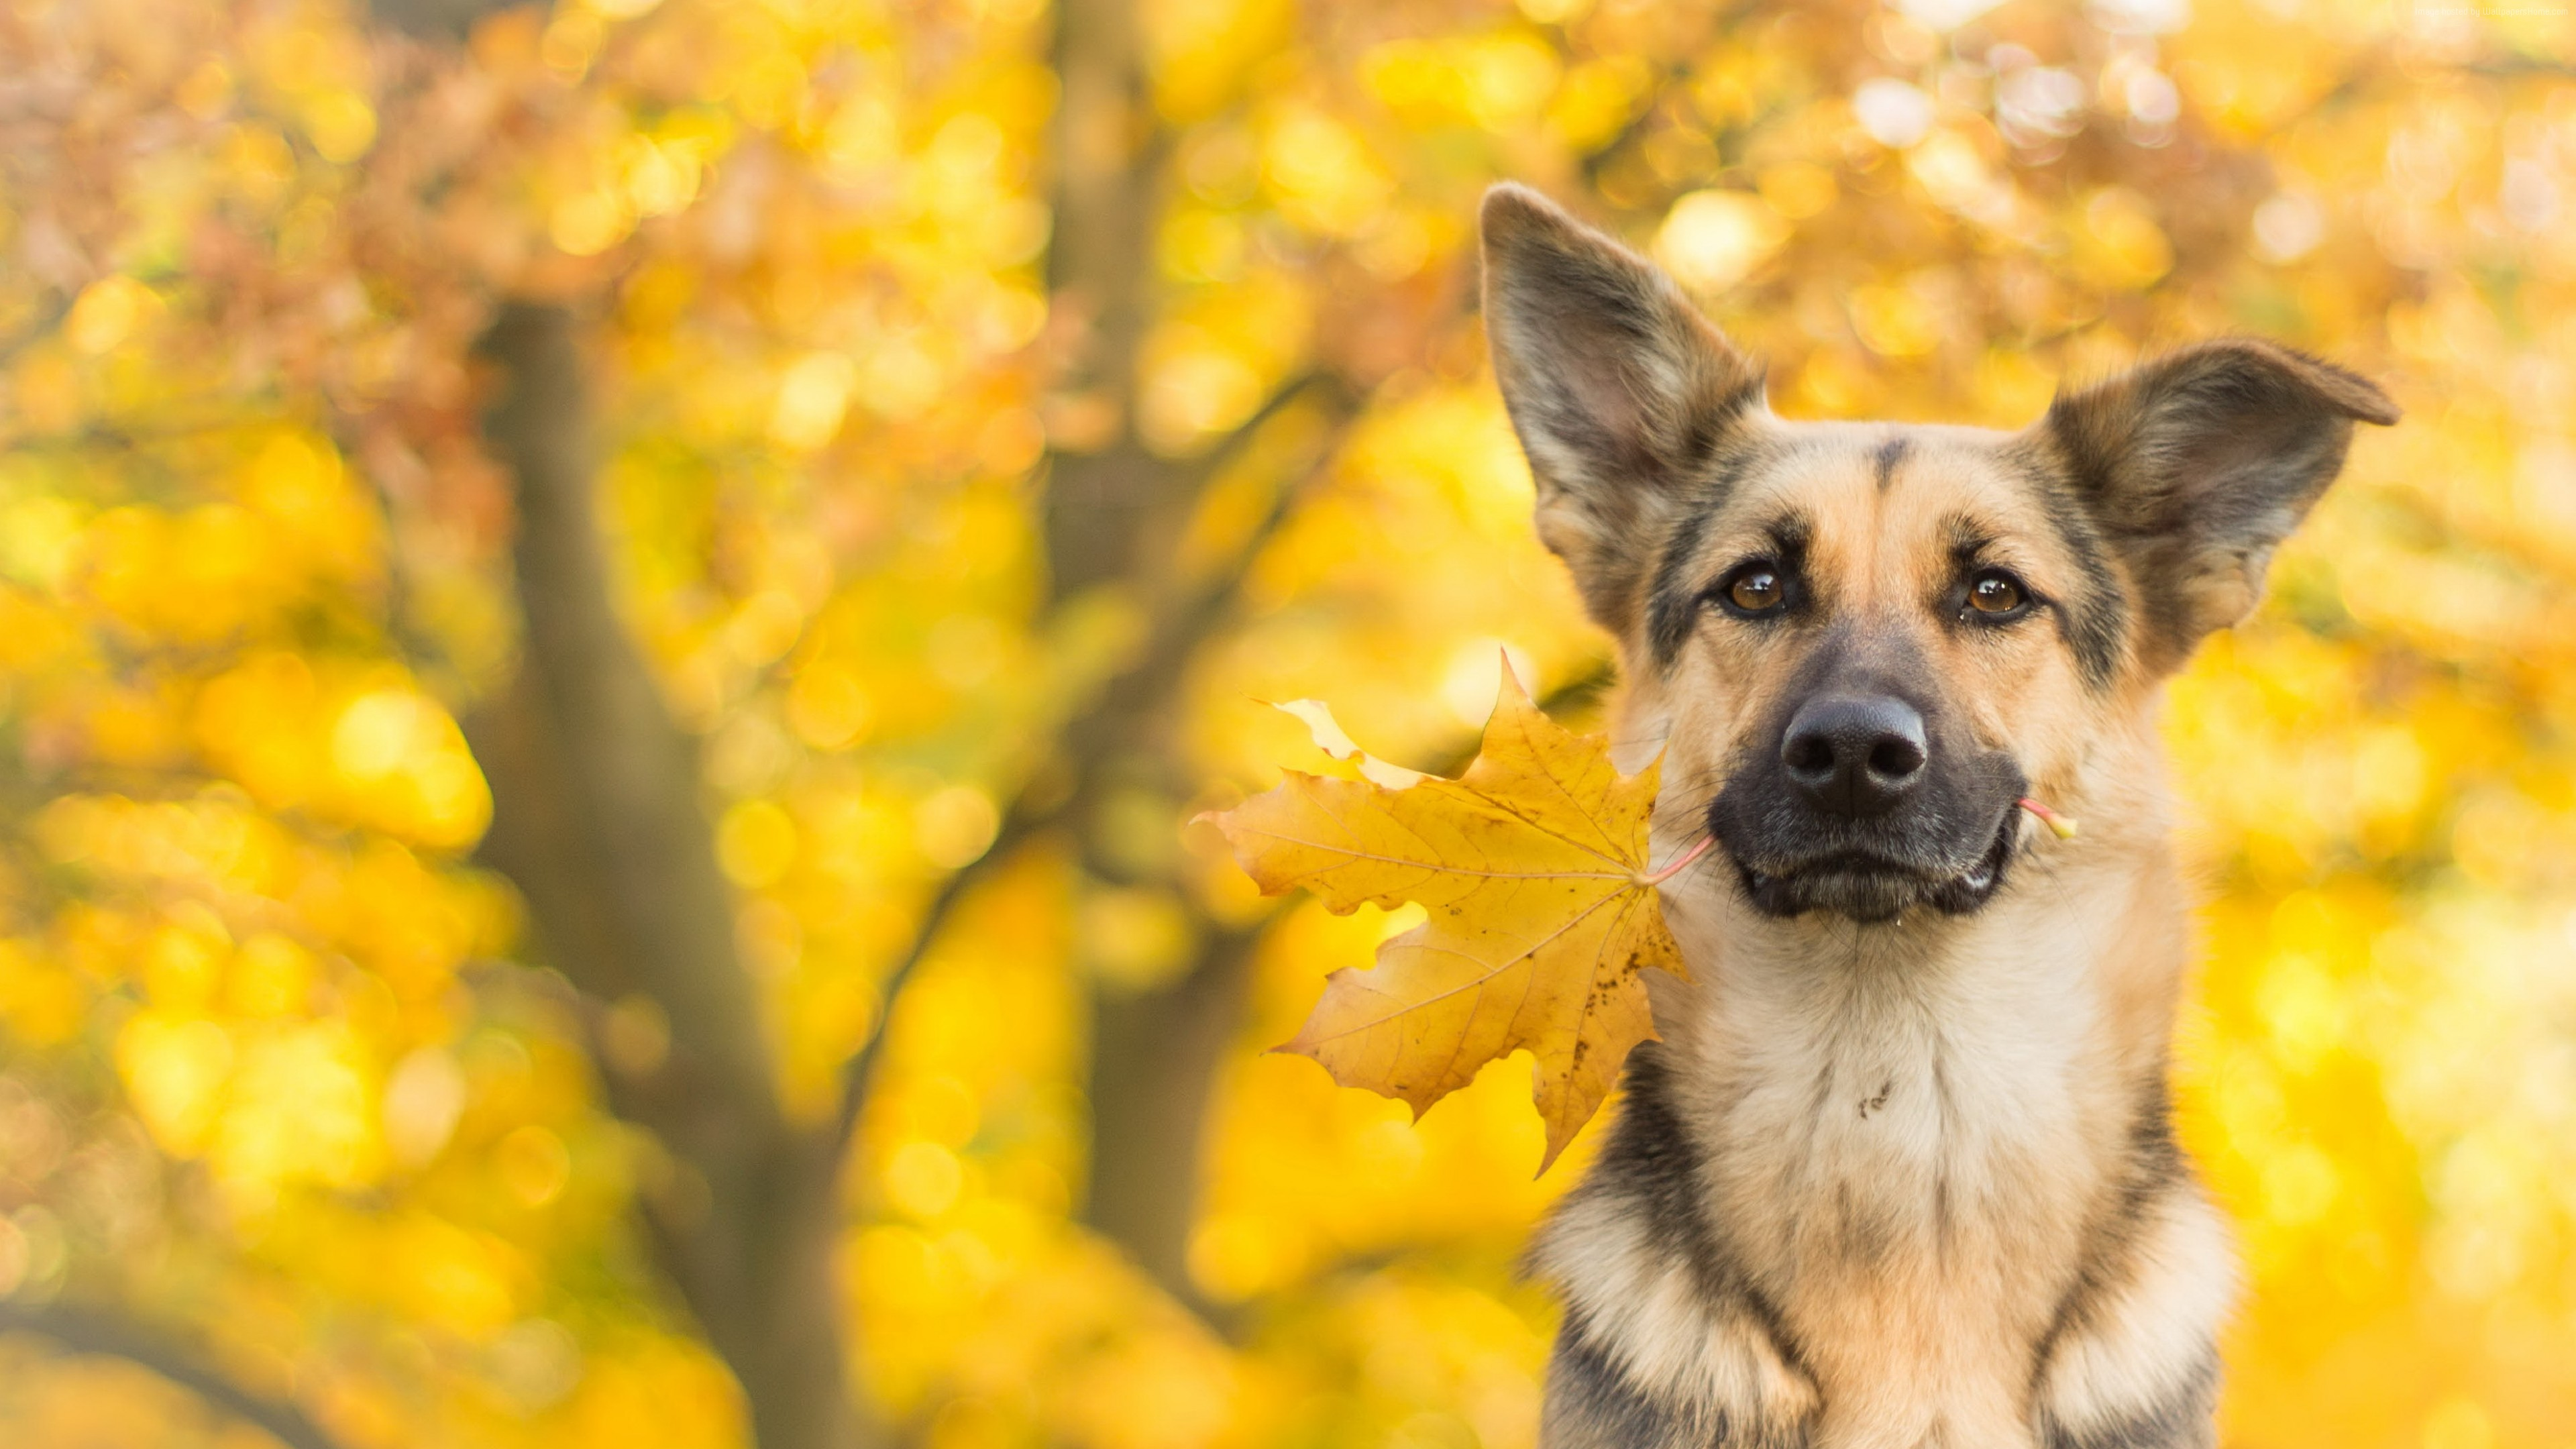 Wallpaper Dog Cute Animals Leaves Autumn 4k Animals Wallpaper Download High Resolution 4k Wallpaper